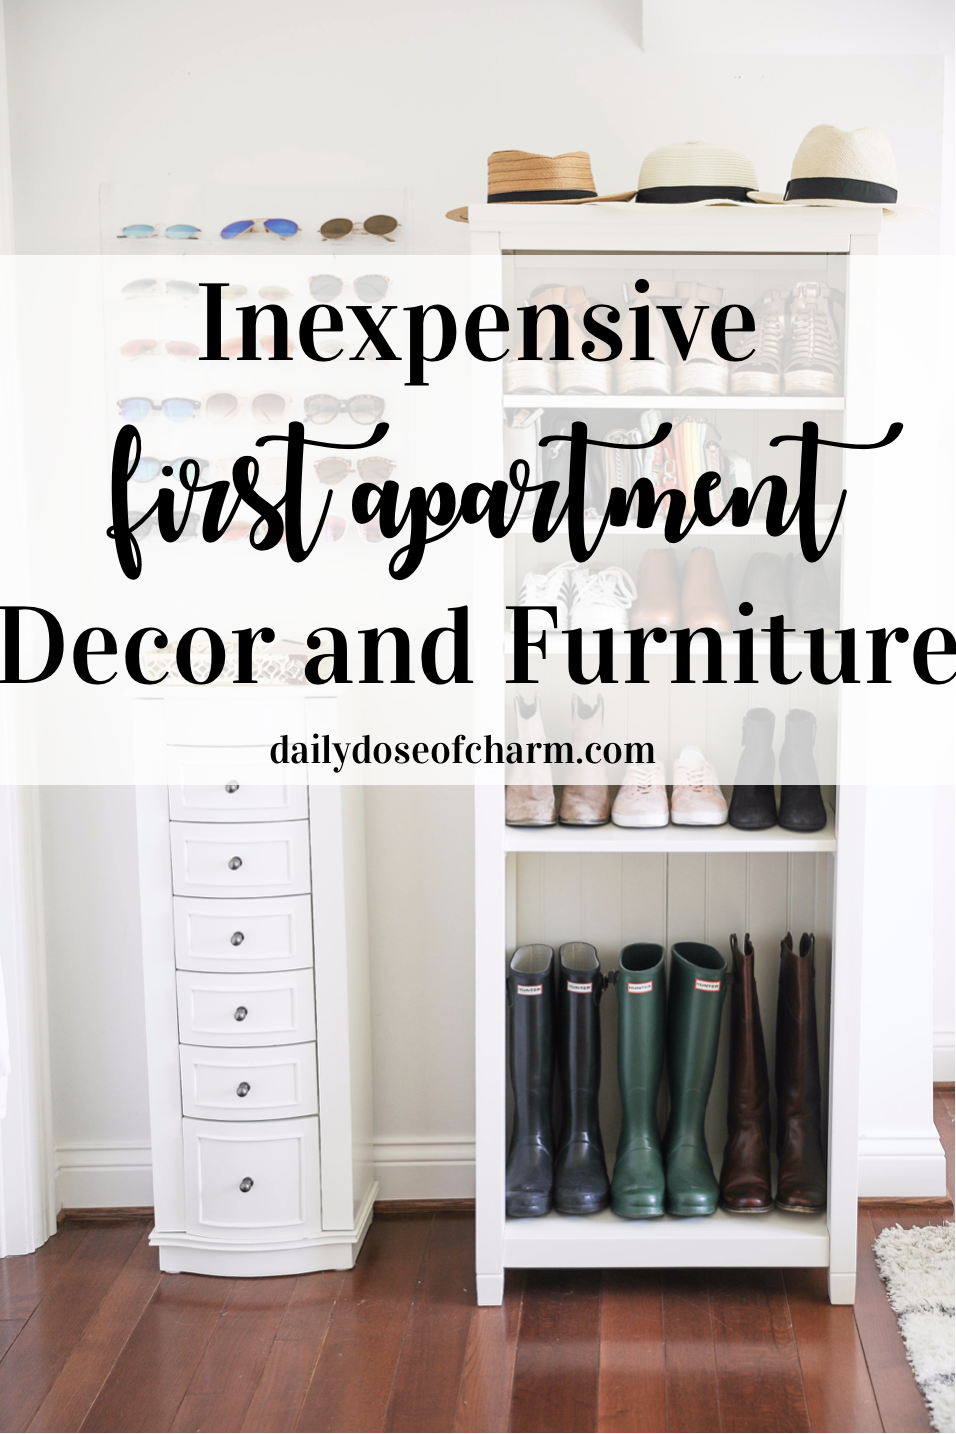 Inexpensive first apartment decor and furniture! Where to find inexpensive decor and cheap furniture! Saving money when moving! college tips daily dose of charm lauren Lindmark